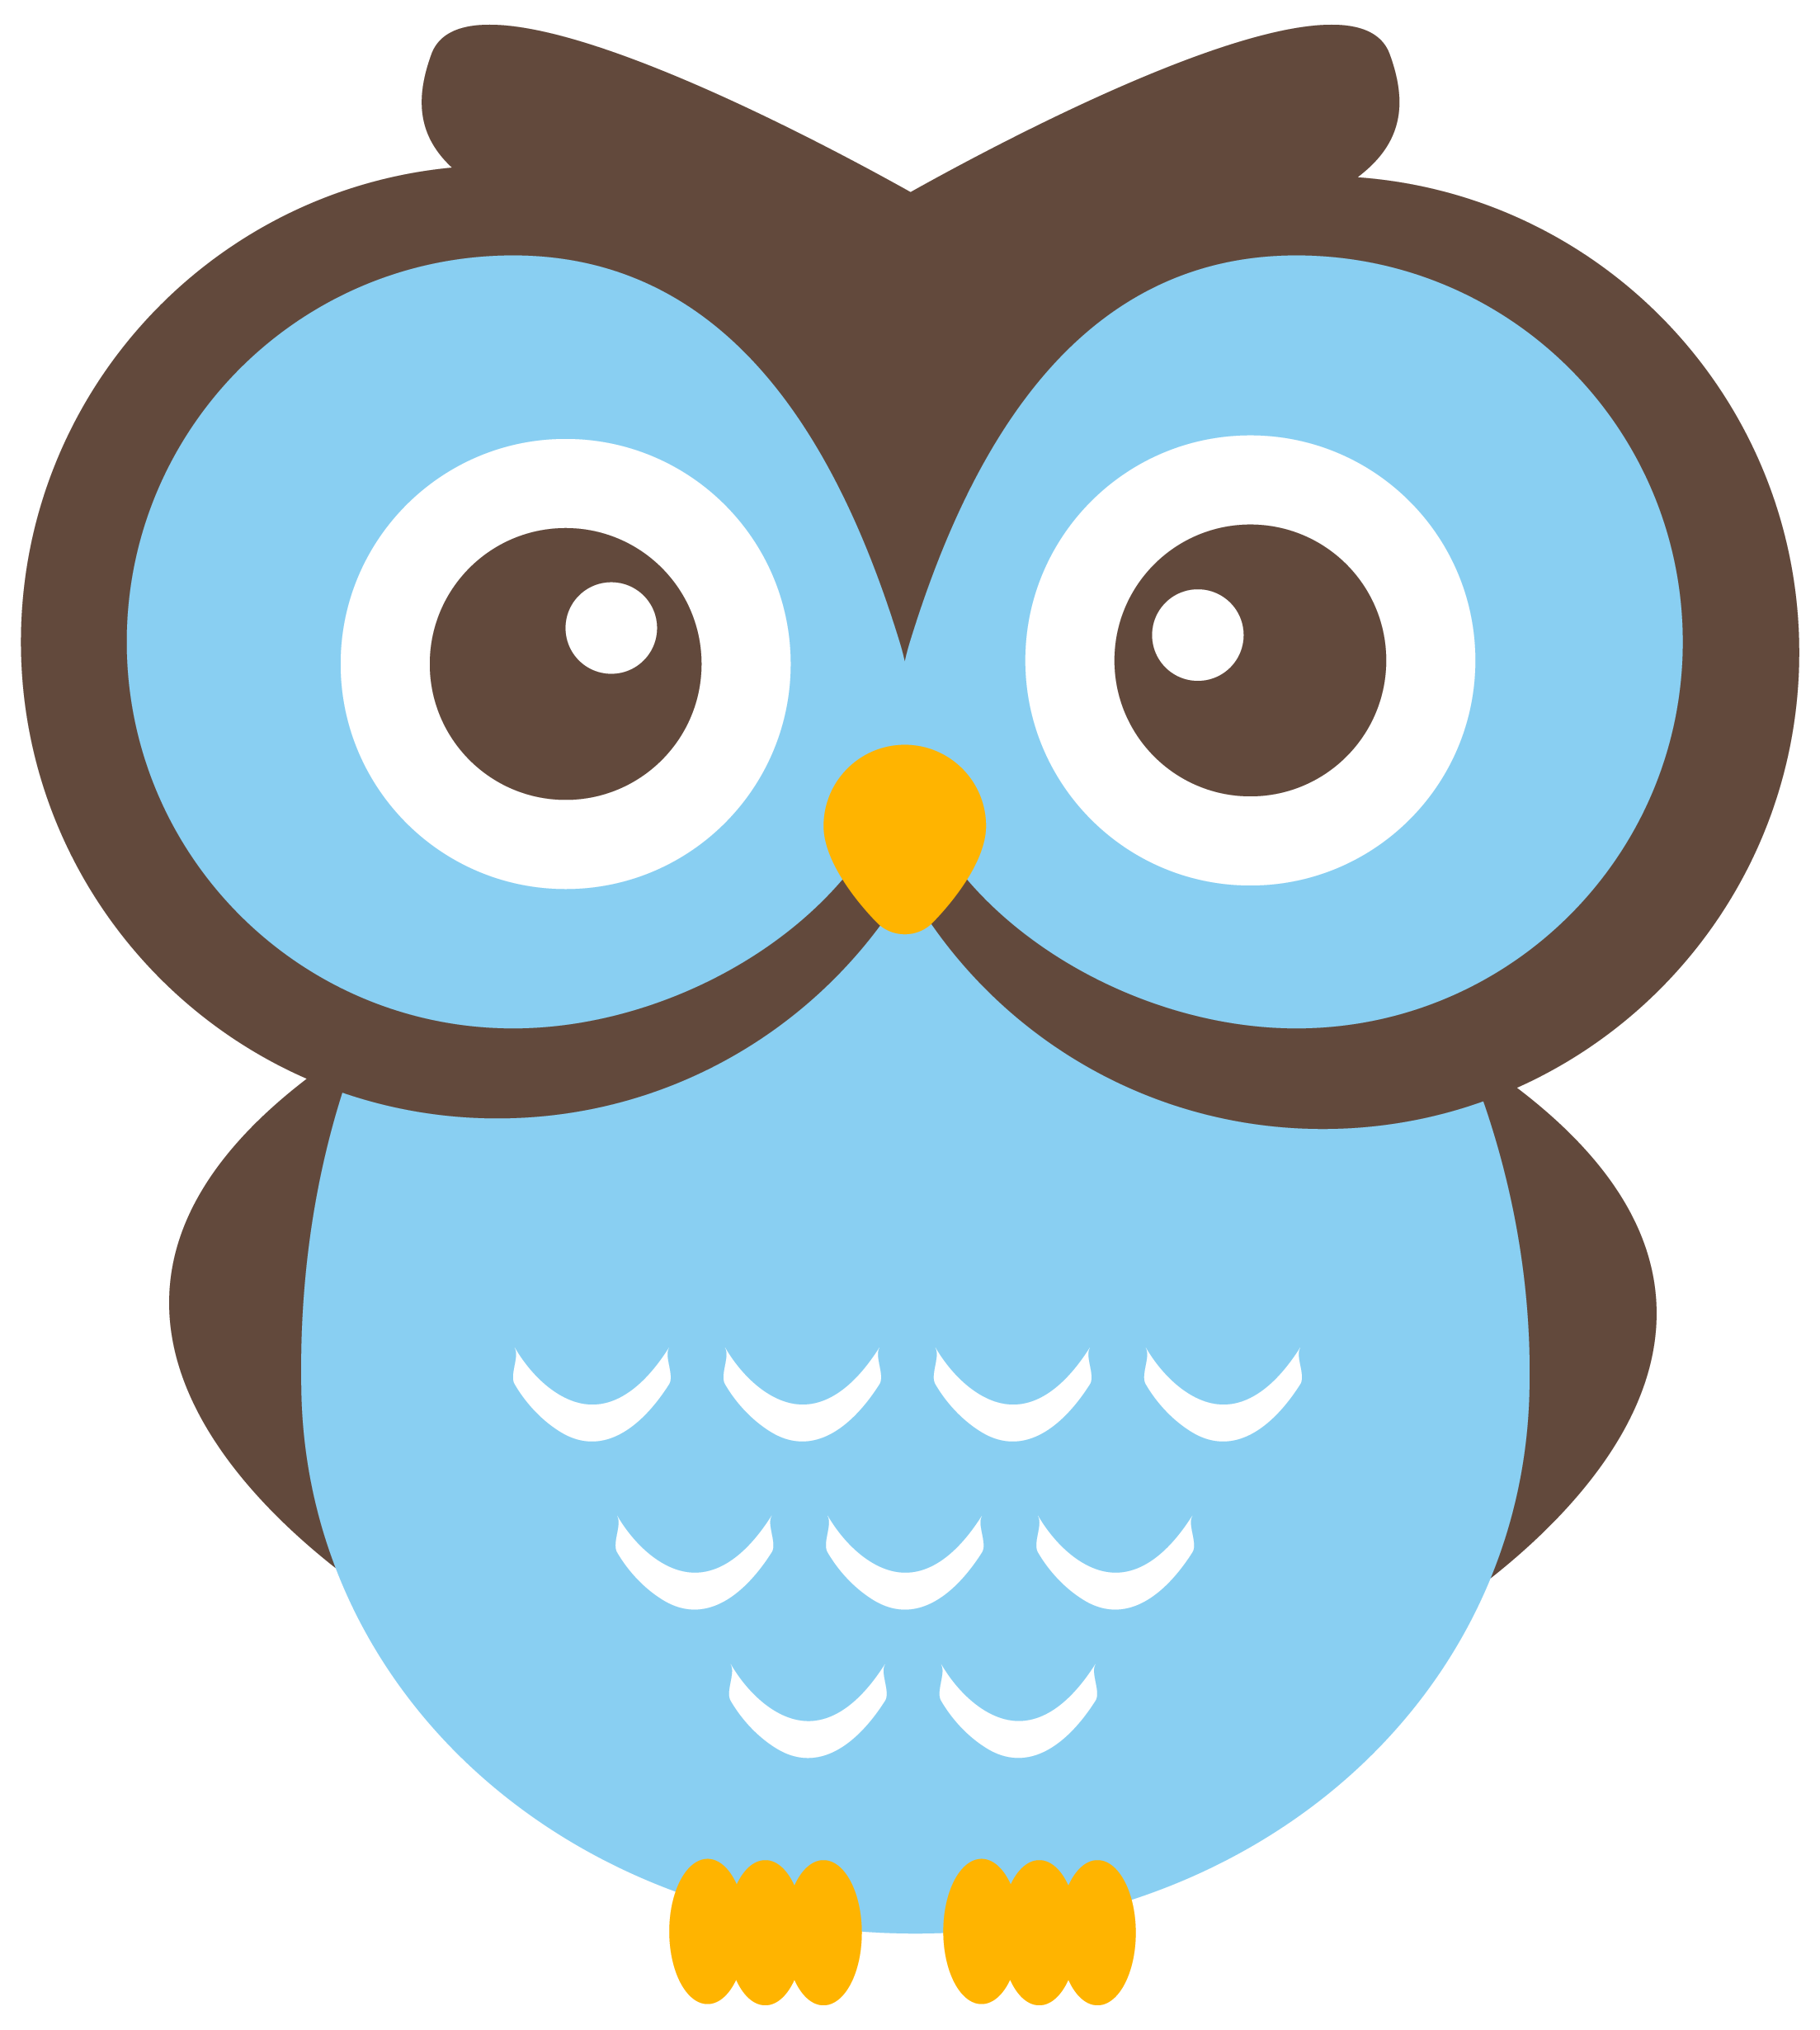 Owl Images Illustrations Photos